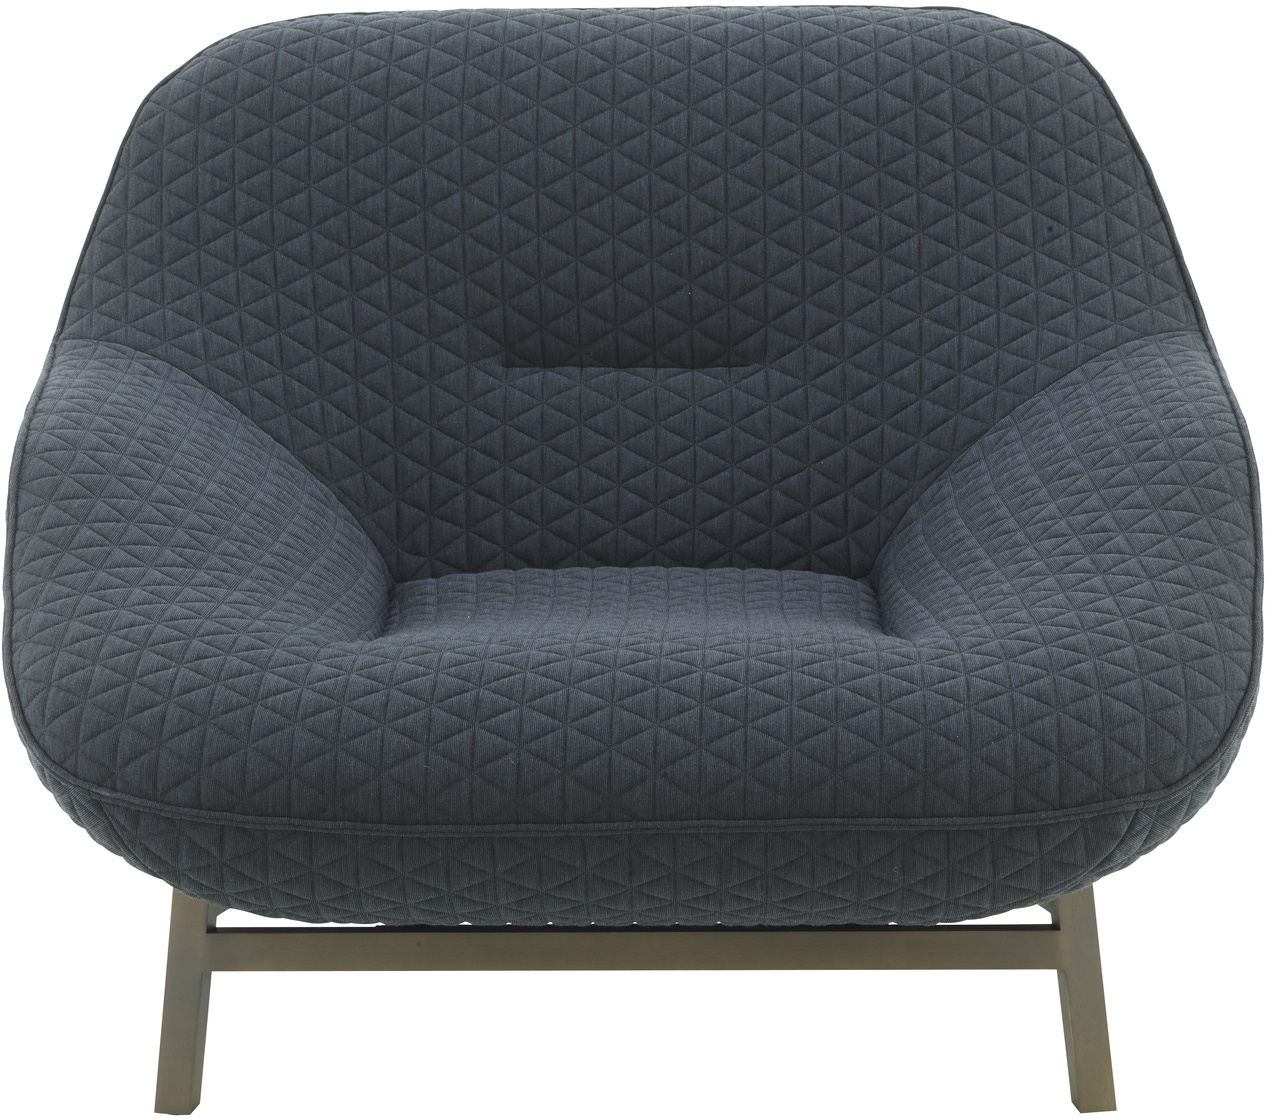 cosse fauteuils designer philippe nigro ligne roset. Black Bedroom Furniture Sets. Home Design Ideas